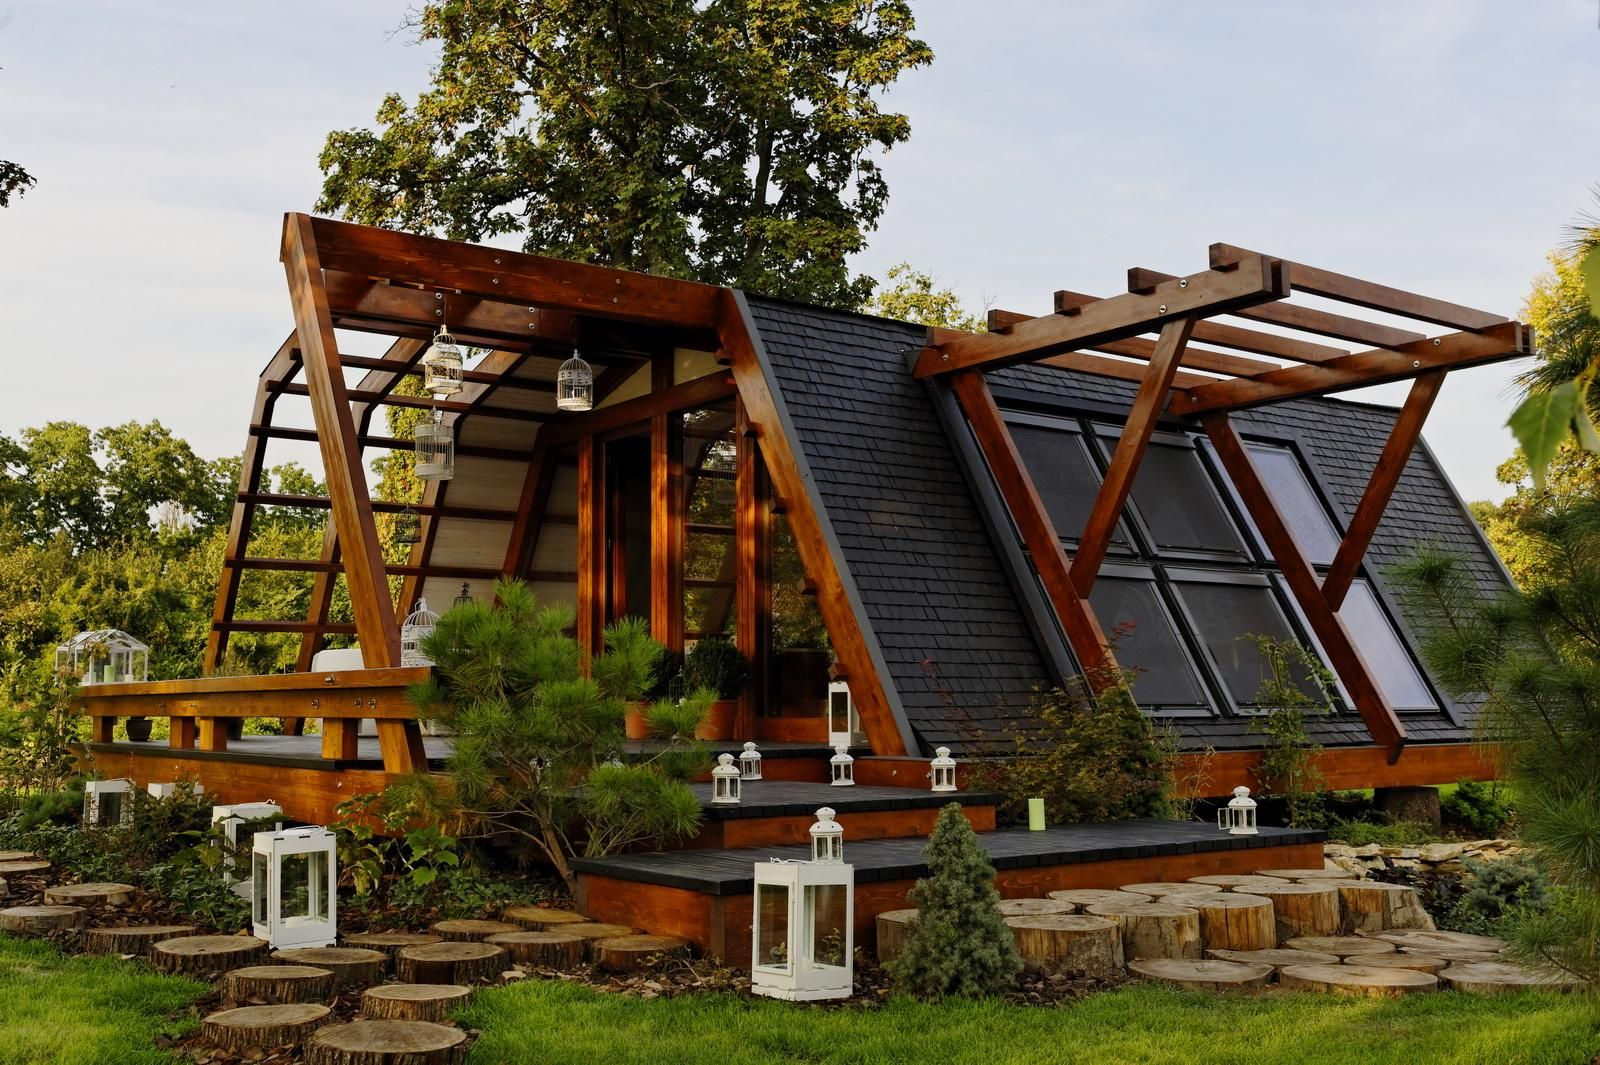 The Soleta Zeroenergy One A Small Sustainable House Passive House Design Eco House Design Sustainable Home